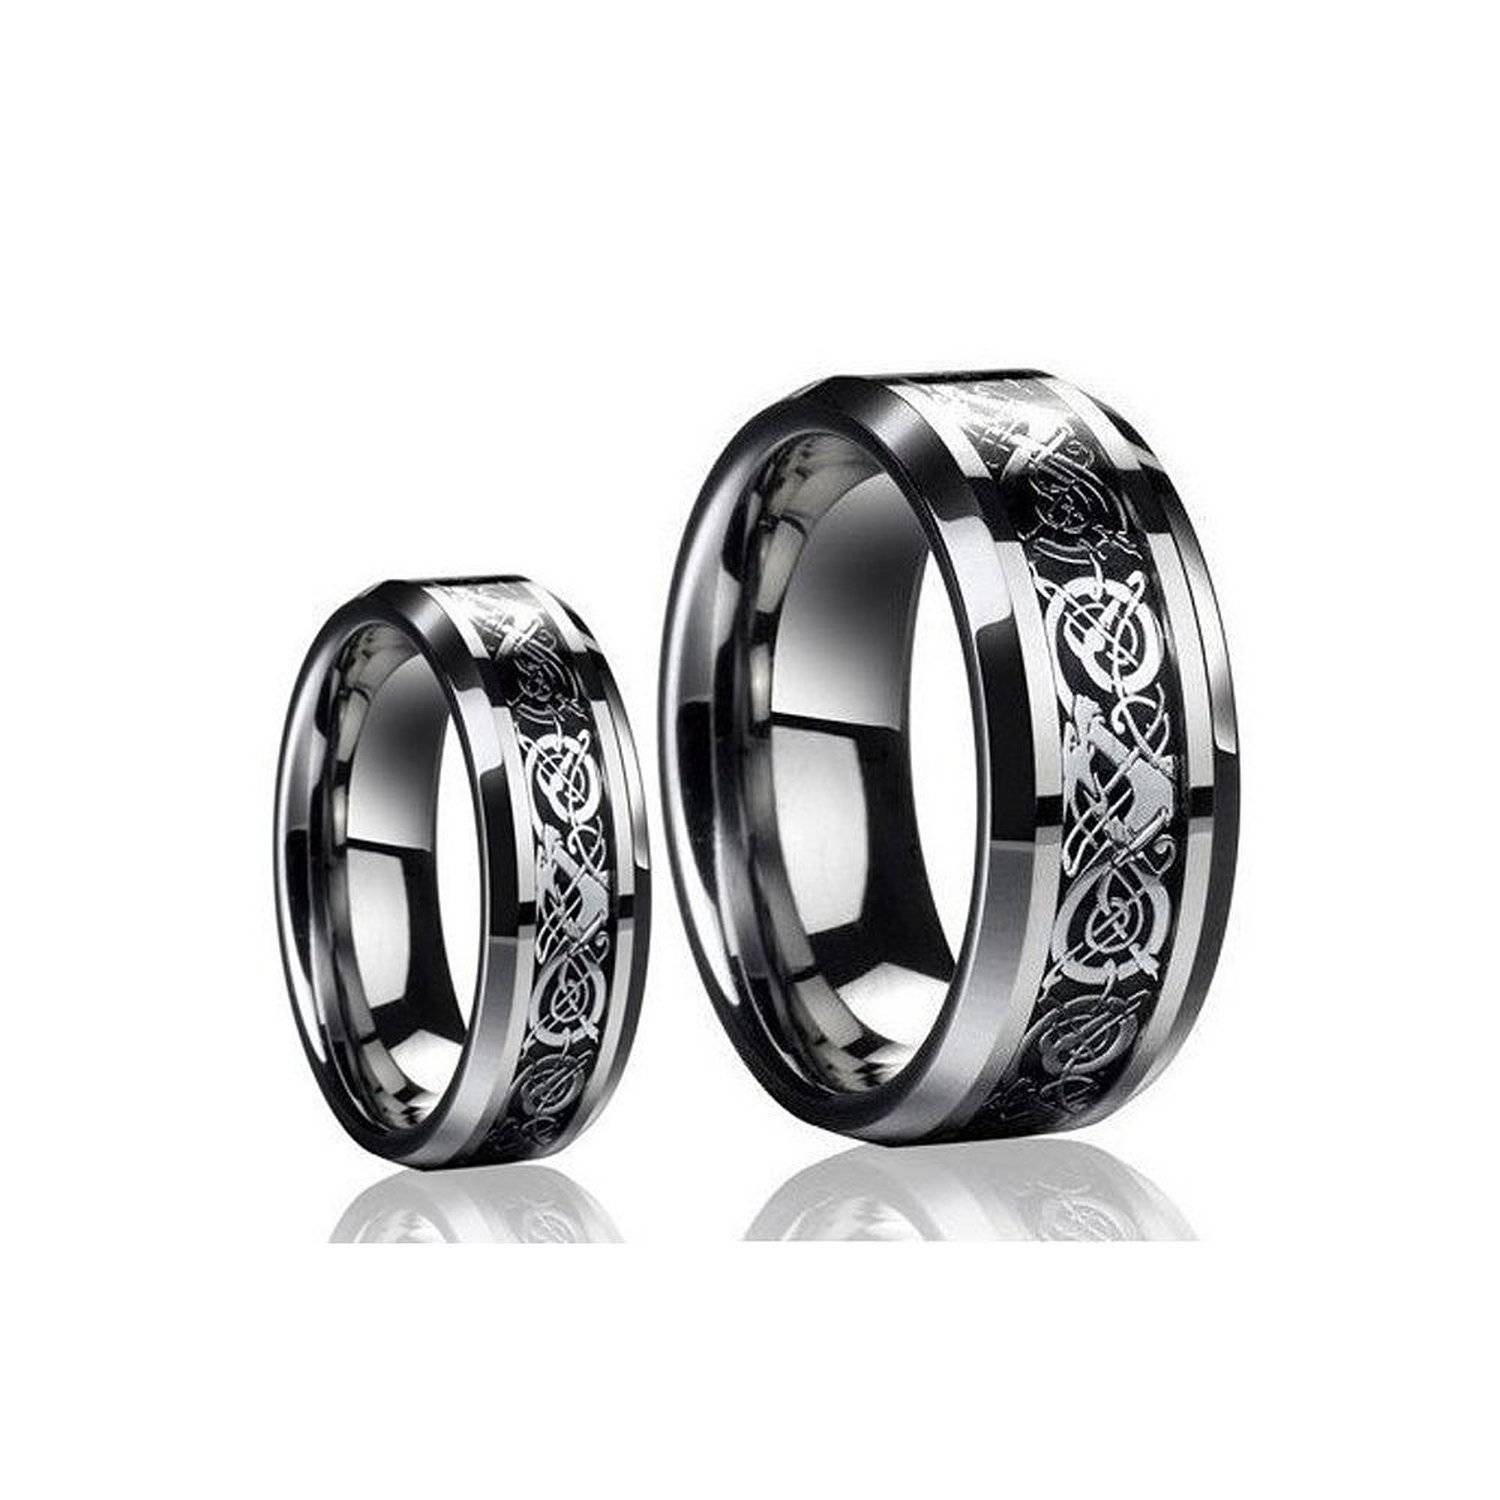 51 Black Wedding Band Sets, Black Stainless Steel Titanium Wedding Throughout Tungsten Titanium Wedding Bands (Gallery 9 of 15)